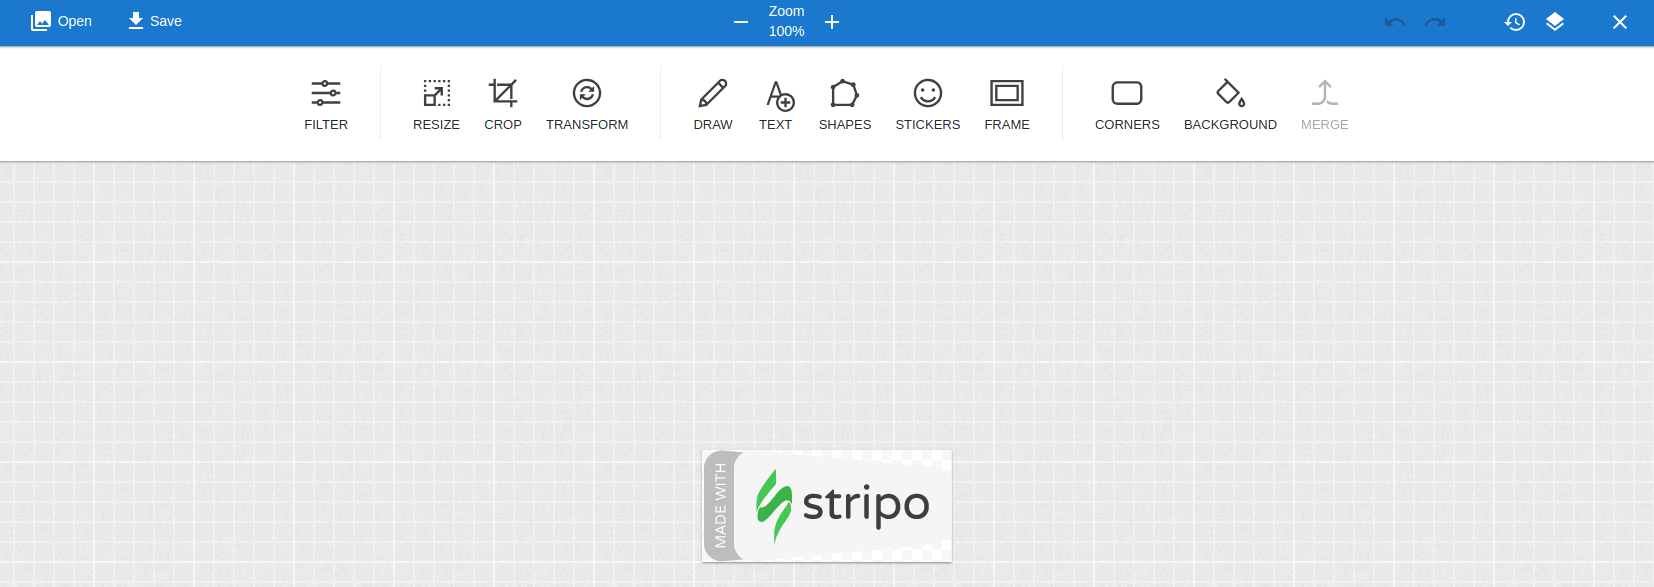 Stripo built-in image editor for designing email templates